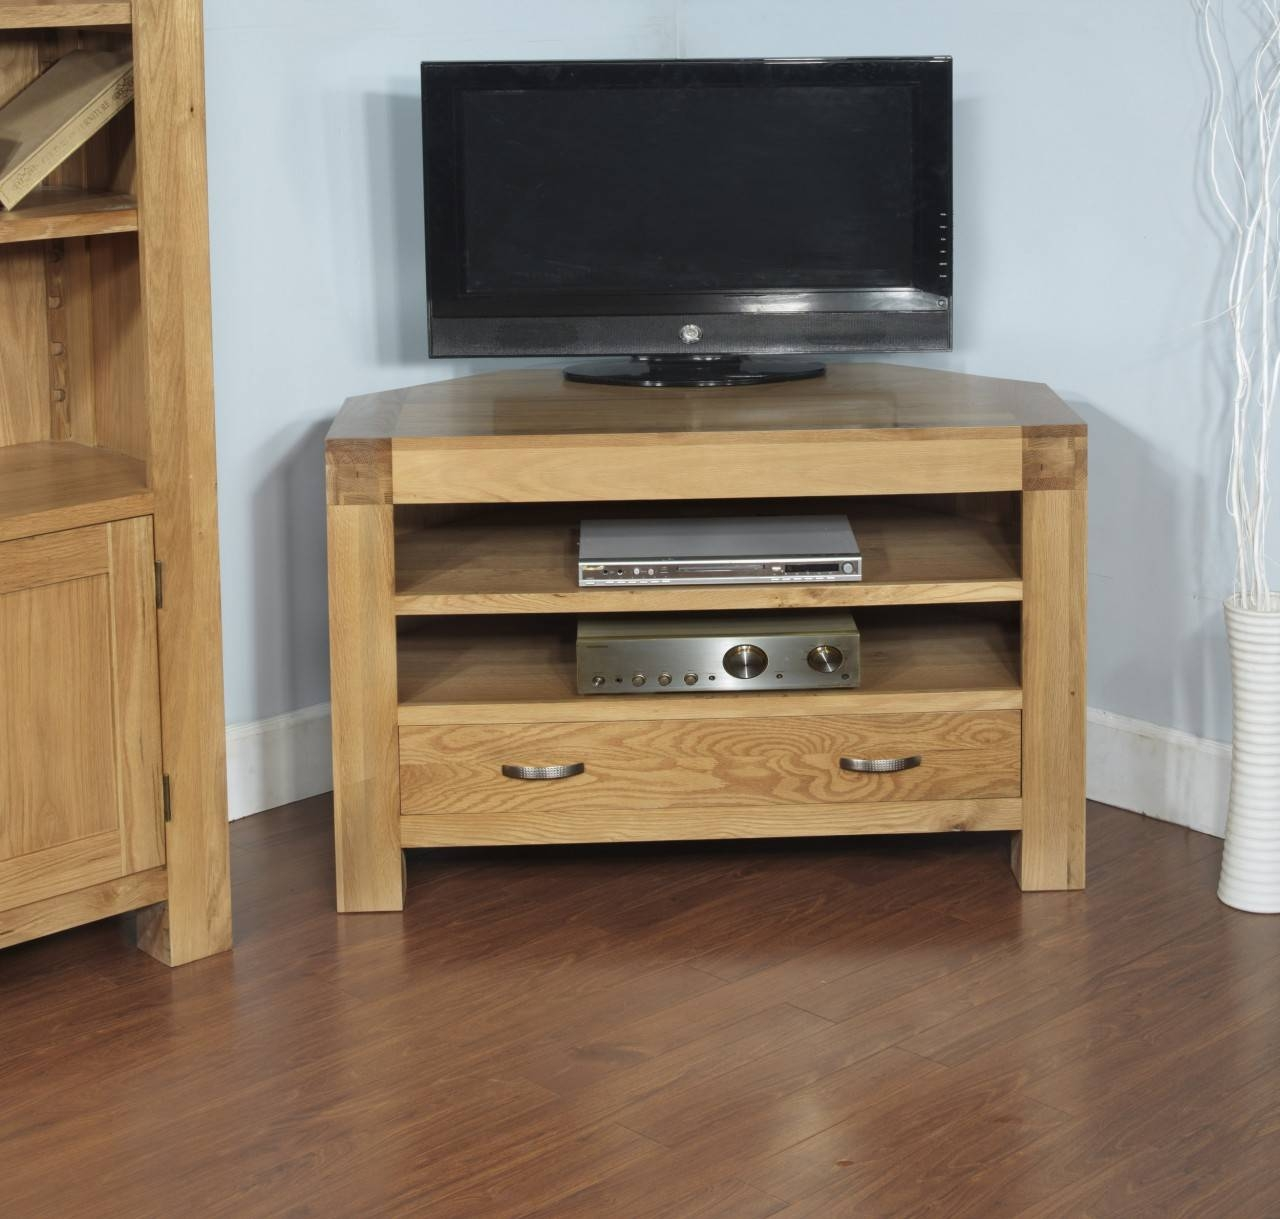 Furniture. Alluring Modern Corner Tv Stand For Minimalist with regard to Small Oak Corner Tv Stands (Image 6 of 15)